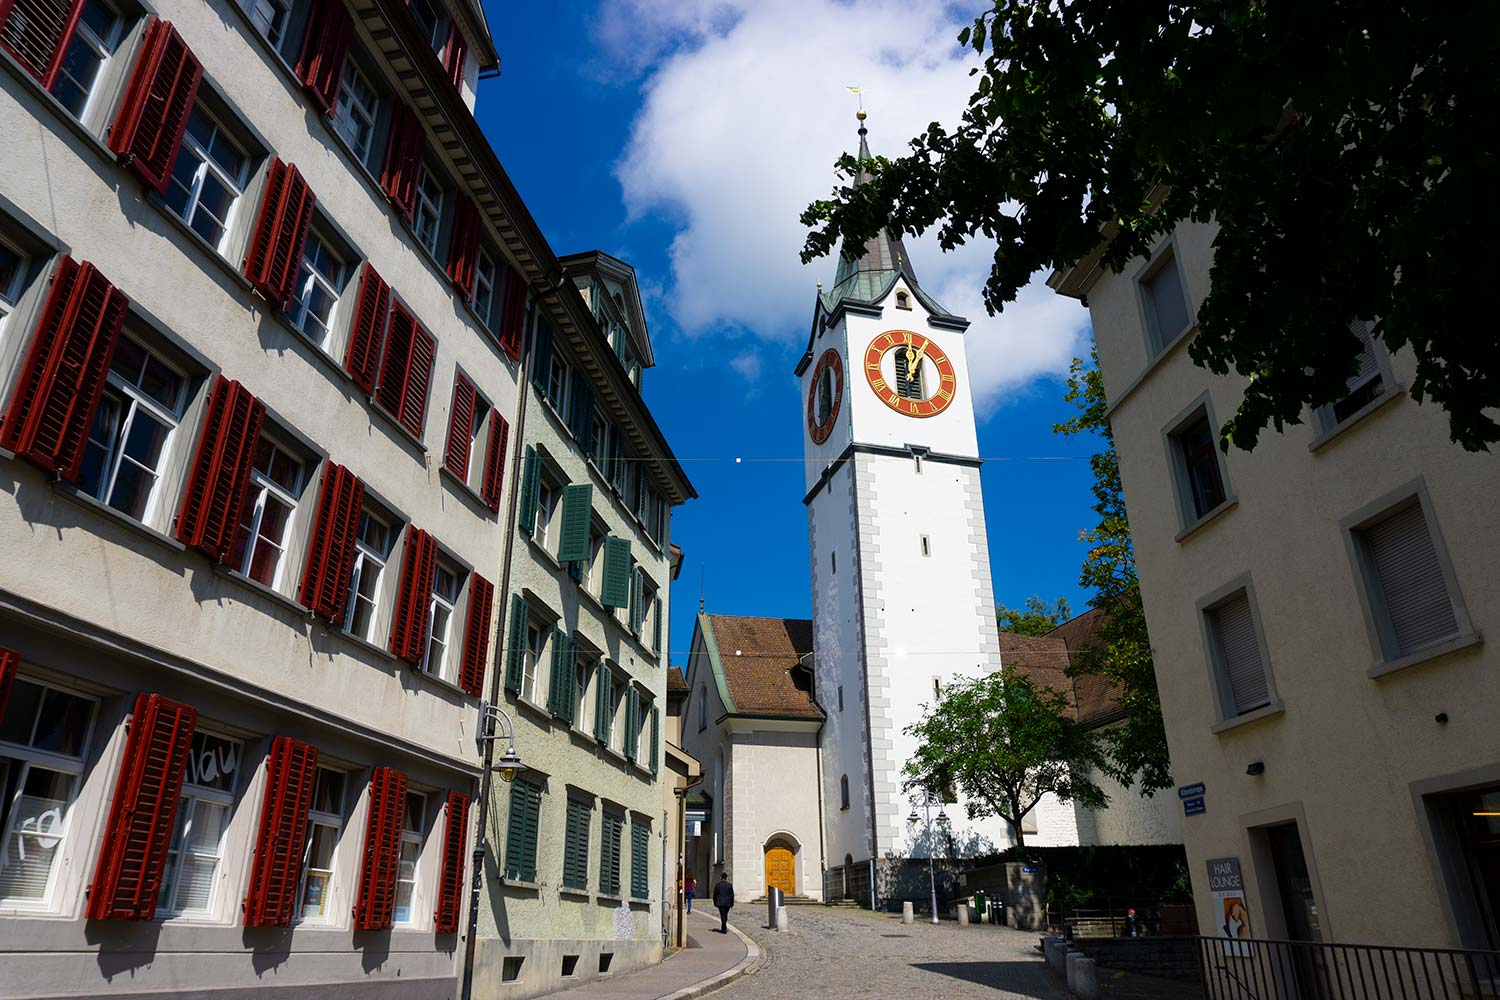 A clocktower in Gallen, Switzerland.